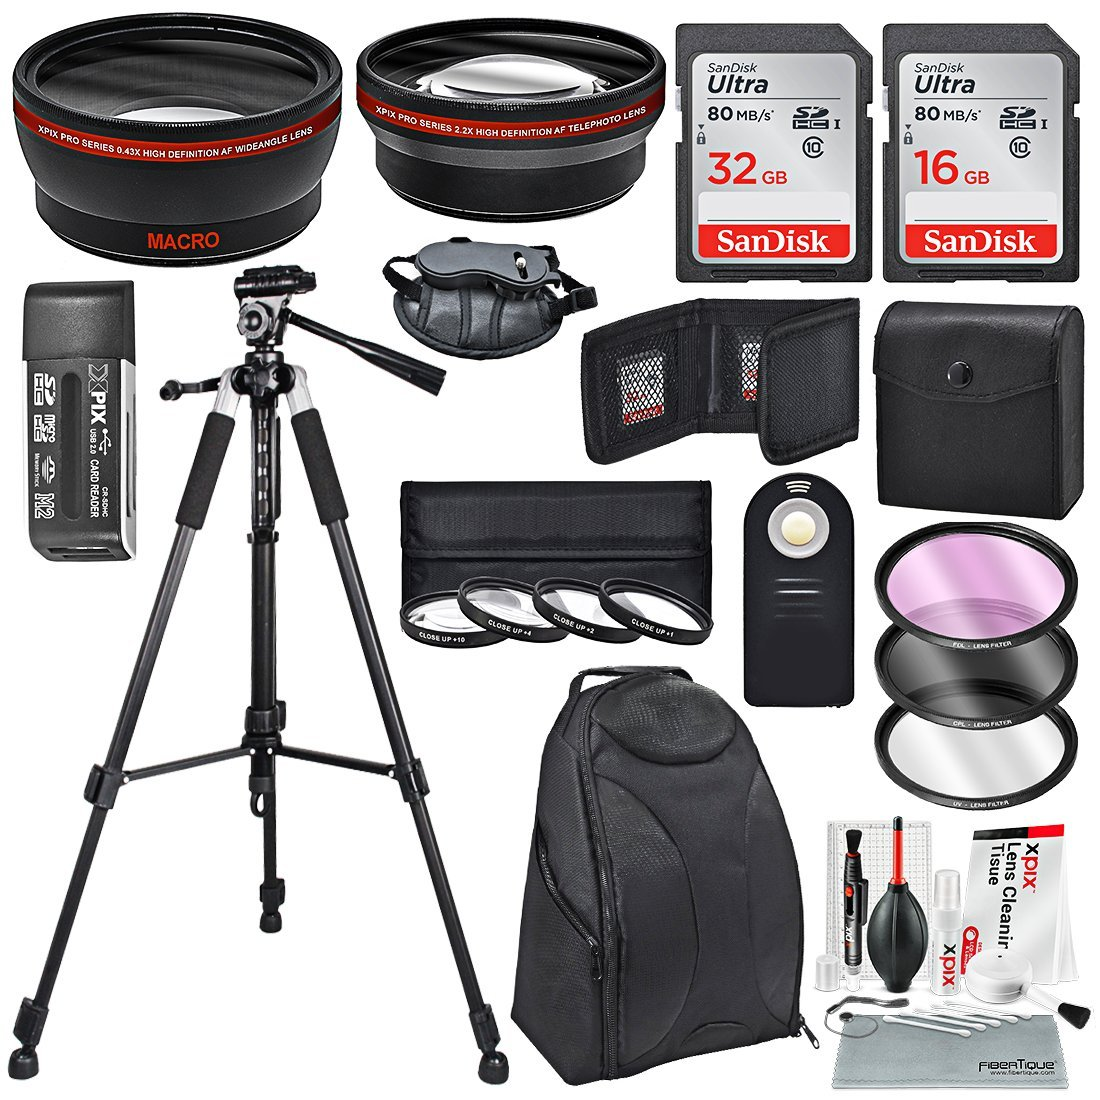 58MM HD 2.2X Telephoto and 0.43X Wide Angle + Xpix Photo Accessories w/Essential Photo and Travel Bag for Canon Rebel (T6s T6i T5i T4i T3i T3 T2i T1i XT), EOS (700D 650D 600D 1100D 550D 500D 100D)